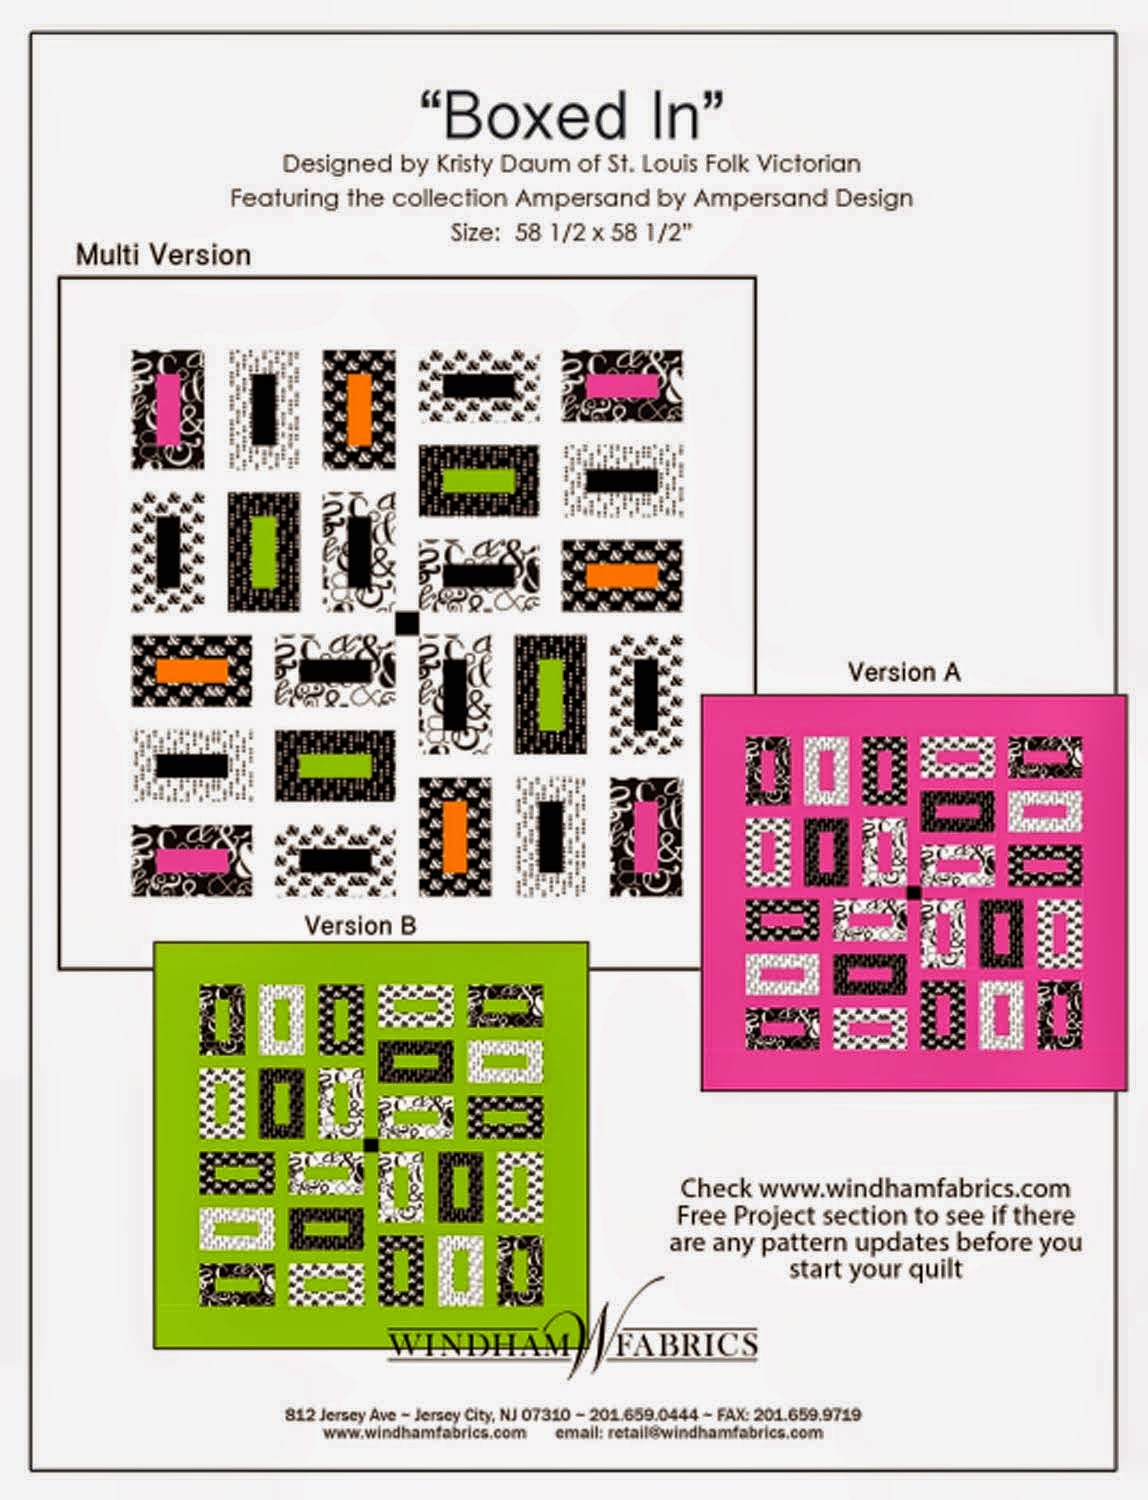 BOXED IN Quilt Pattern // Kristy Daum for Windham Fabrics